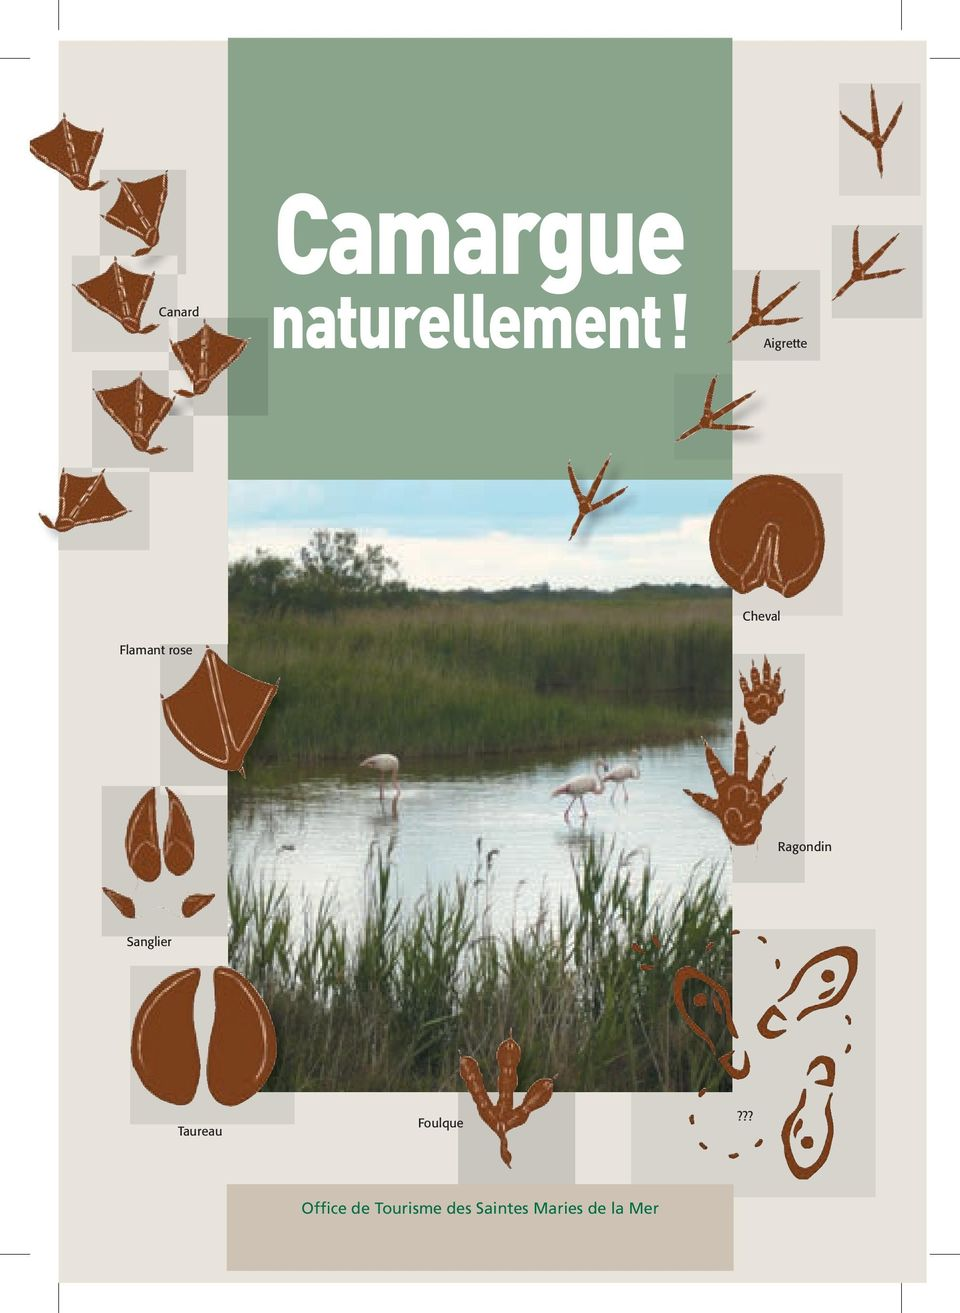 Camargue naturellement office de tourisme des saintes - Office tourisme sainte marie de la mer ...